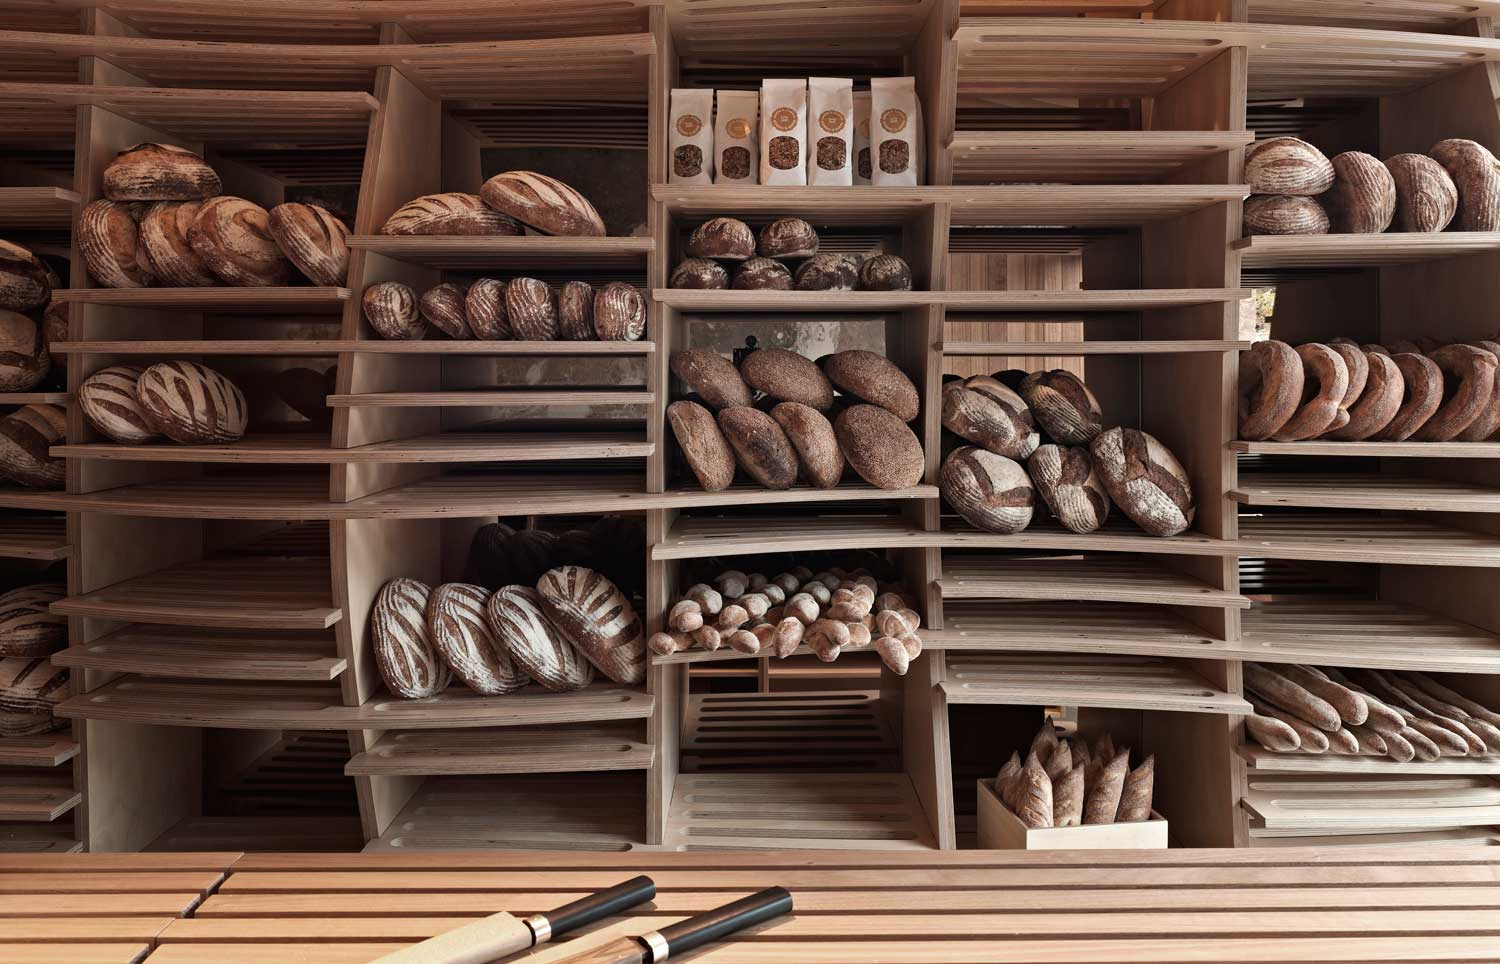 Baker D Chirico by March Studio | Yellowtrace